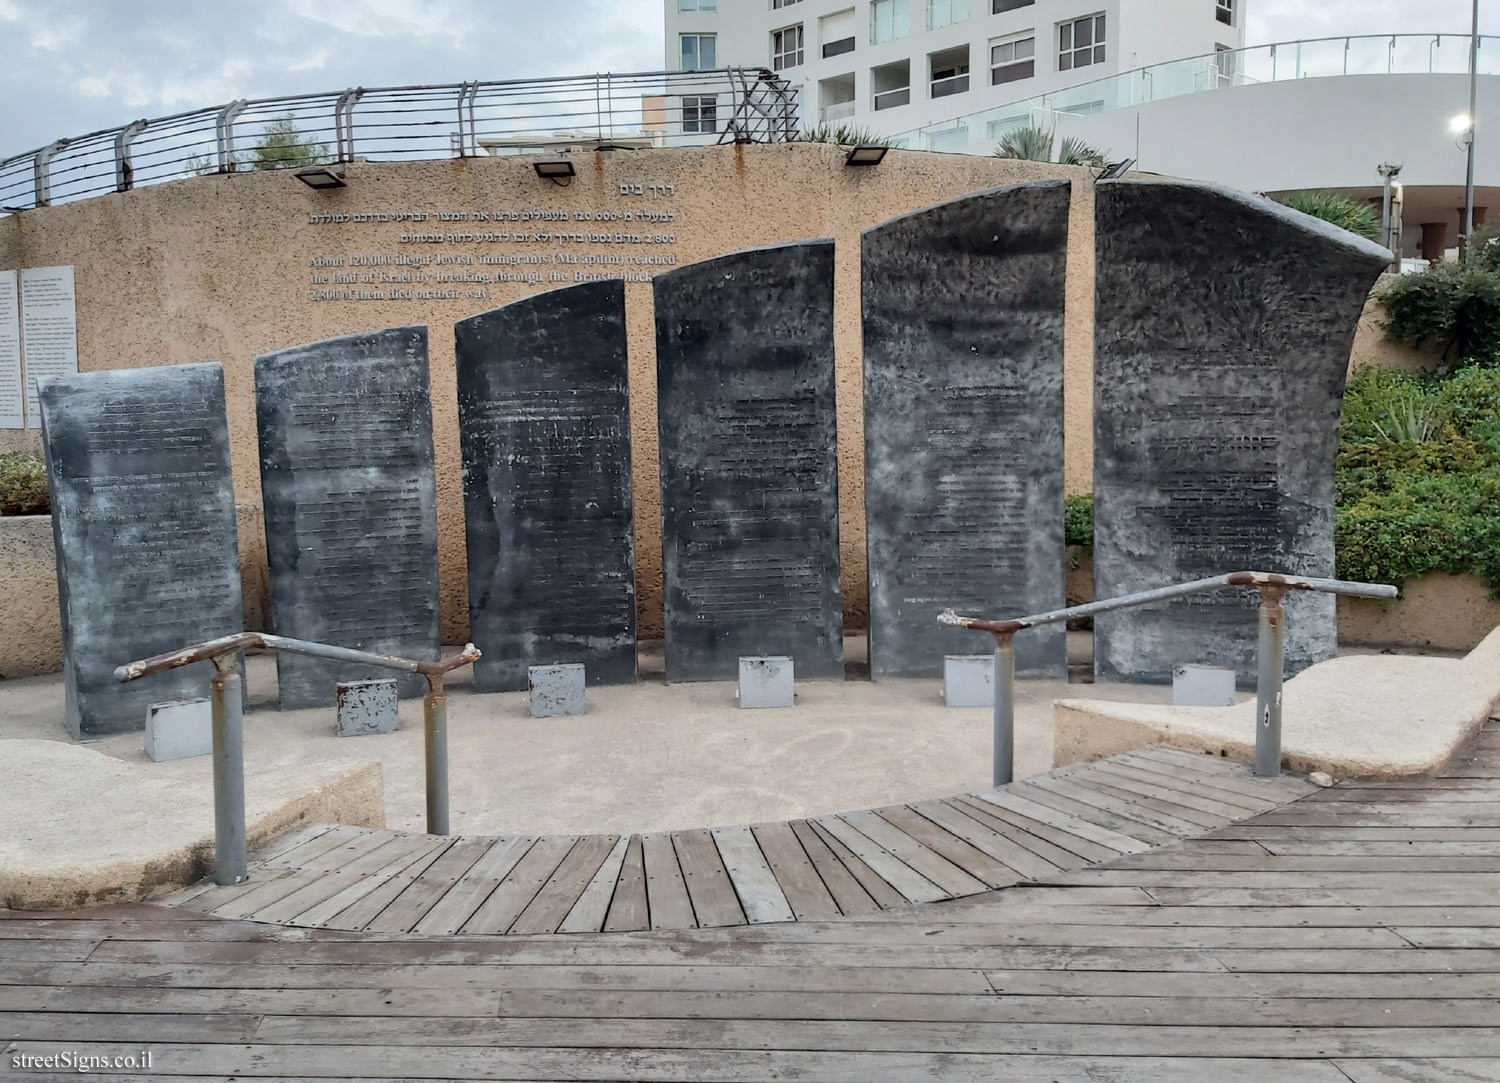 Tel Aviv - London Garden - The story of the illegal immigration - the names of the ships